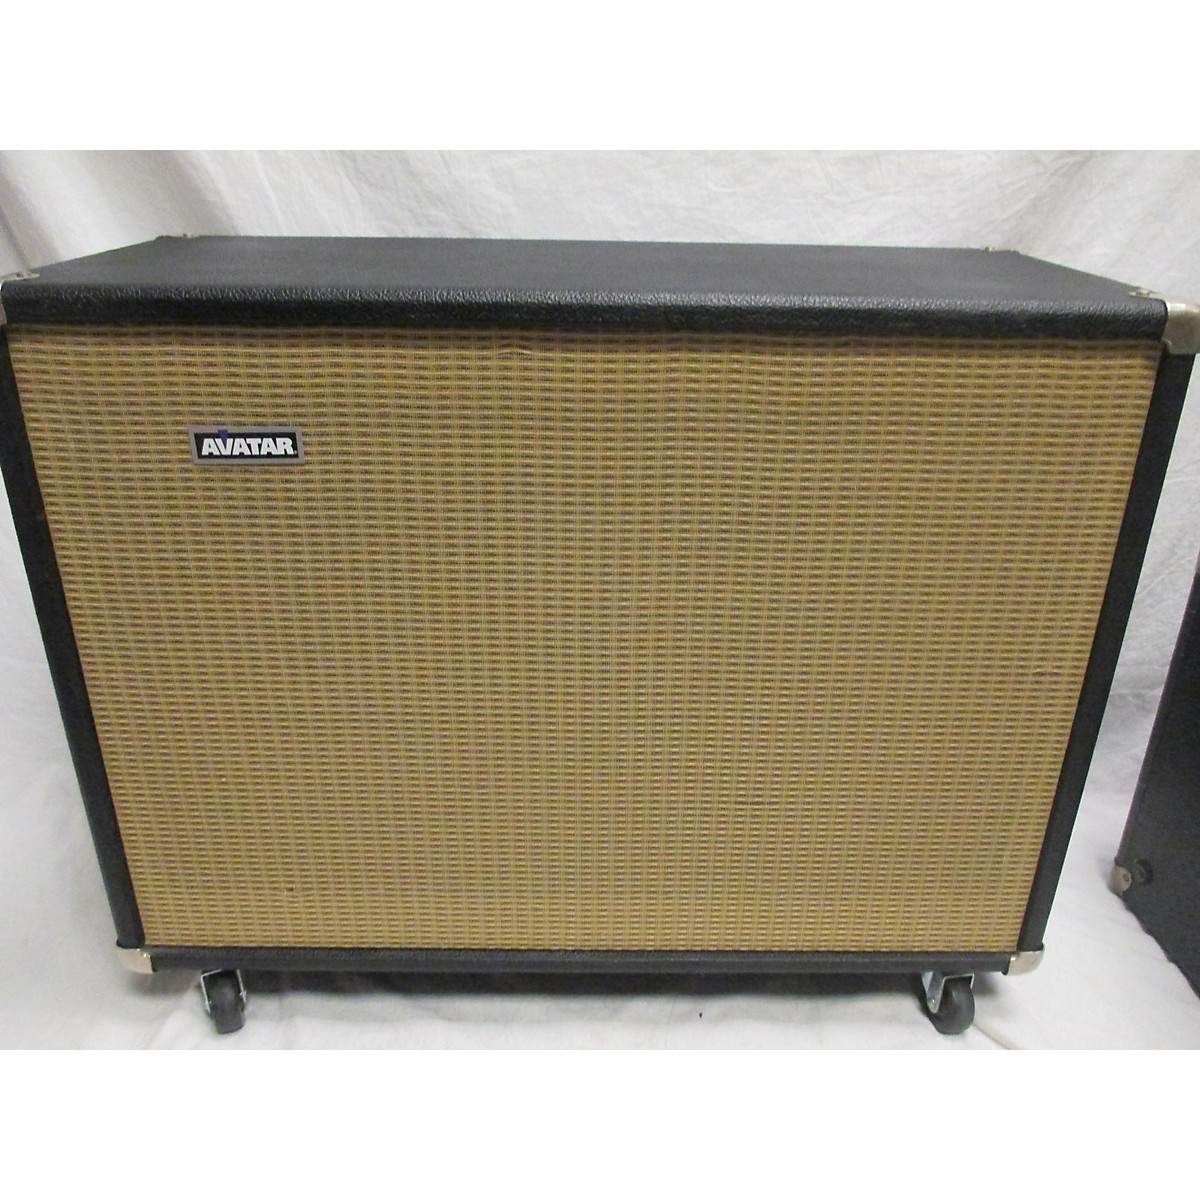 Avatar G212 Traditional W/ Eminence Pro 12s Guitar Cabinet